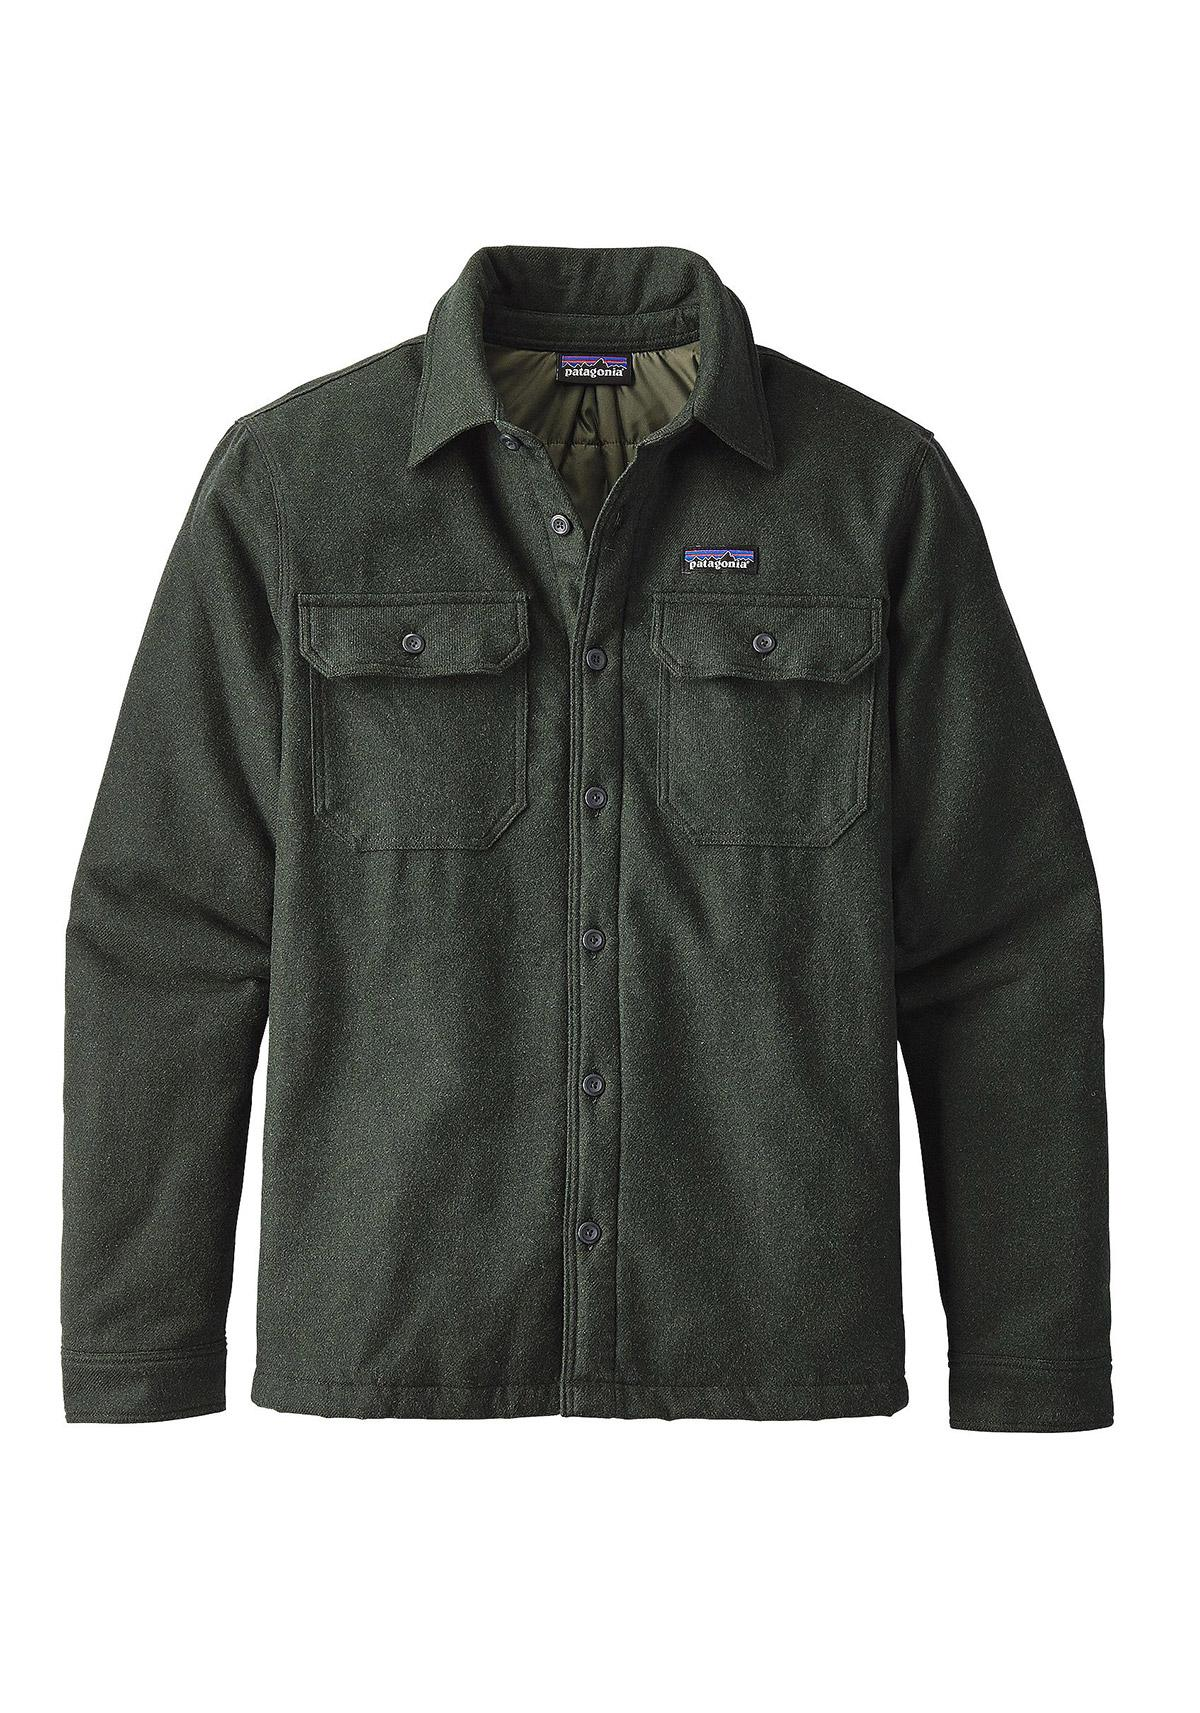 Jacket Patagonia Insulated Fjord Flannel